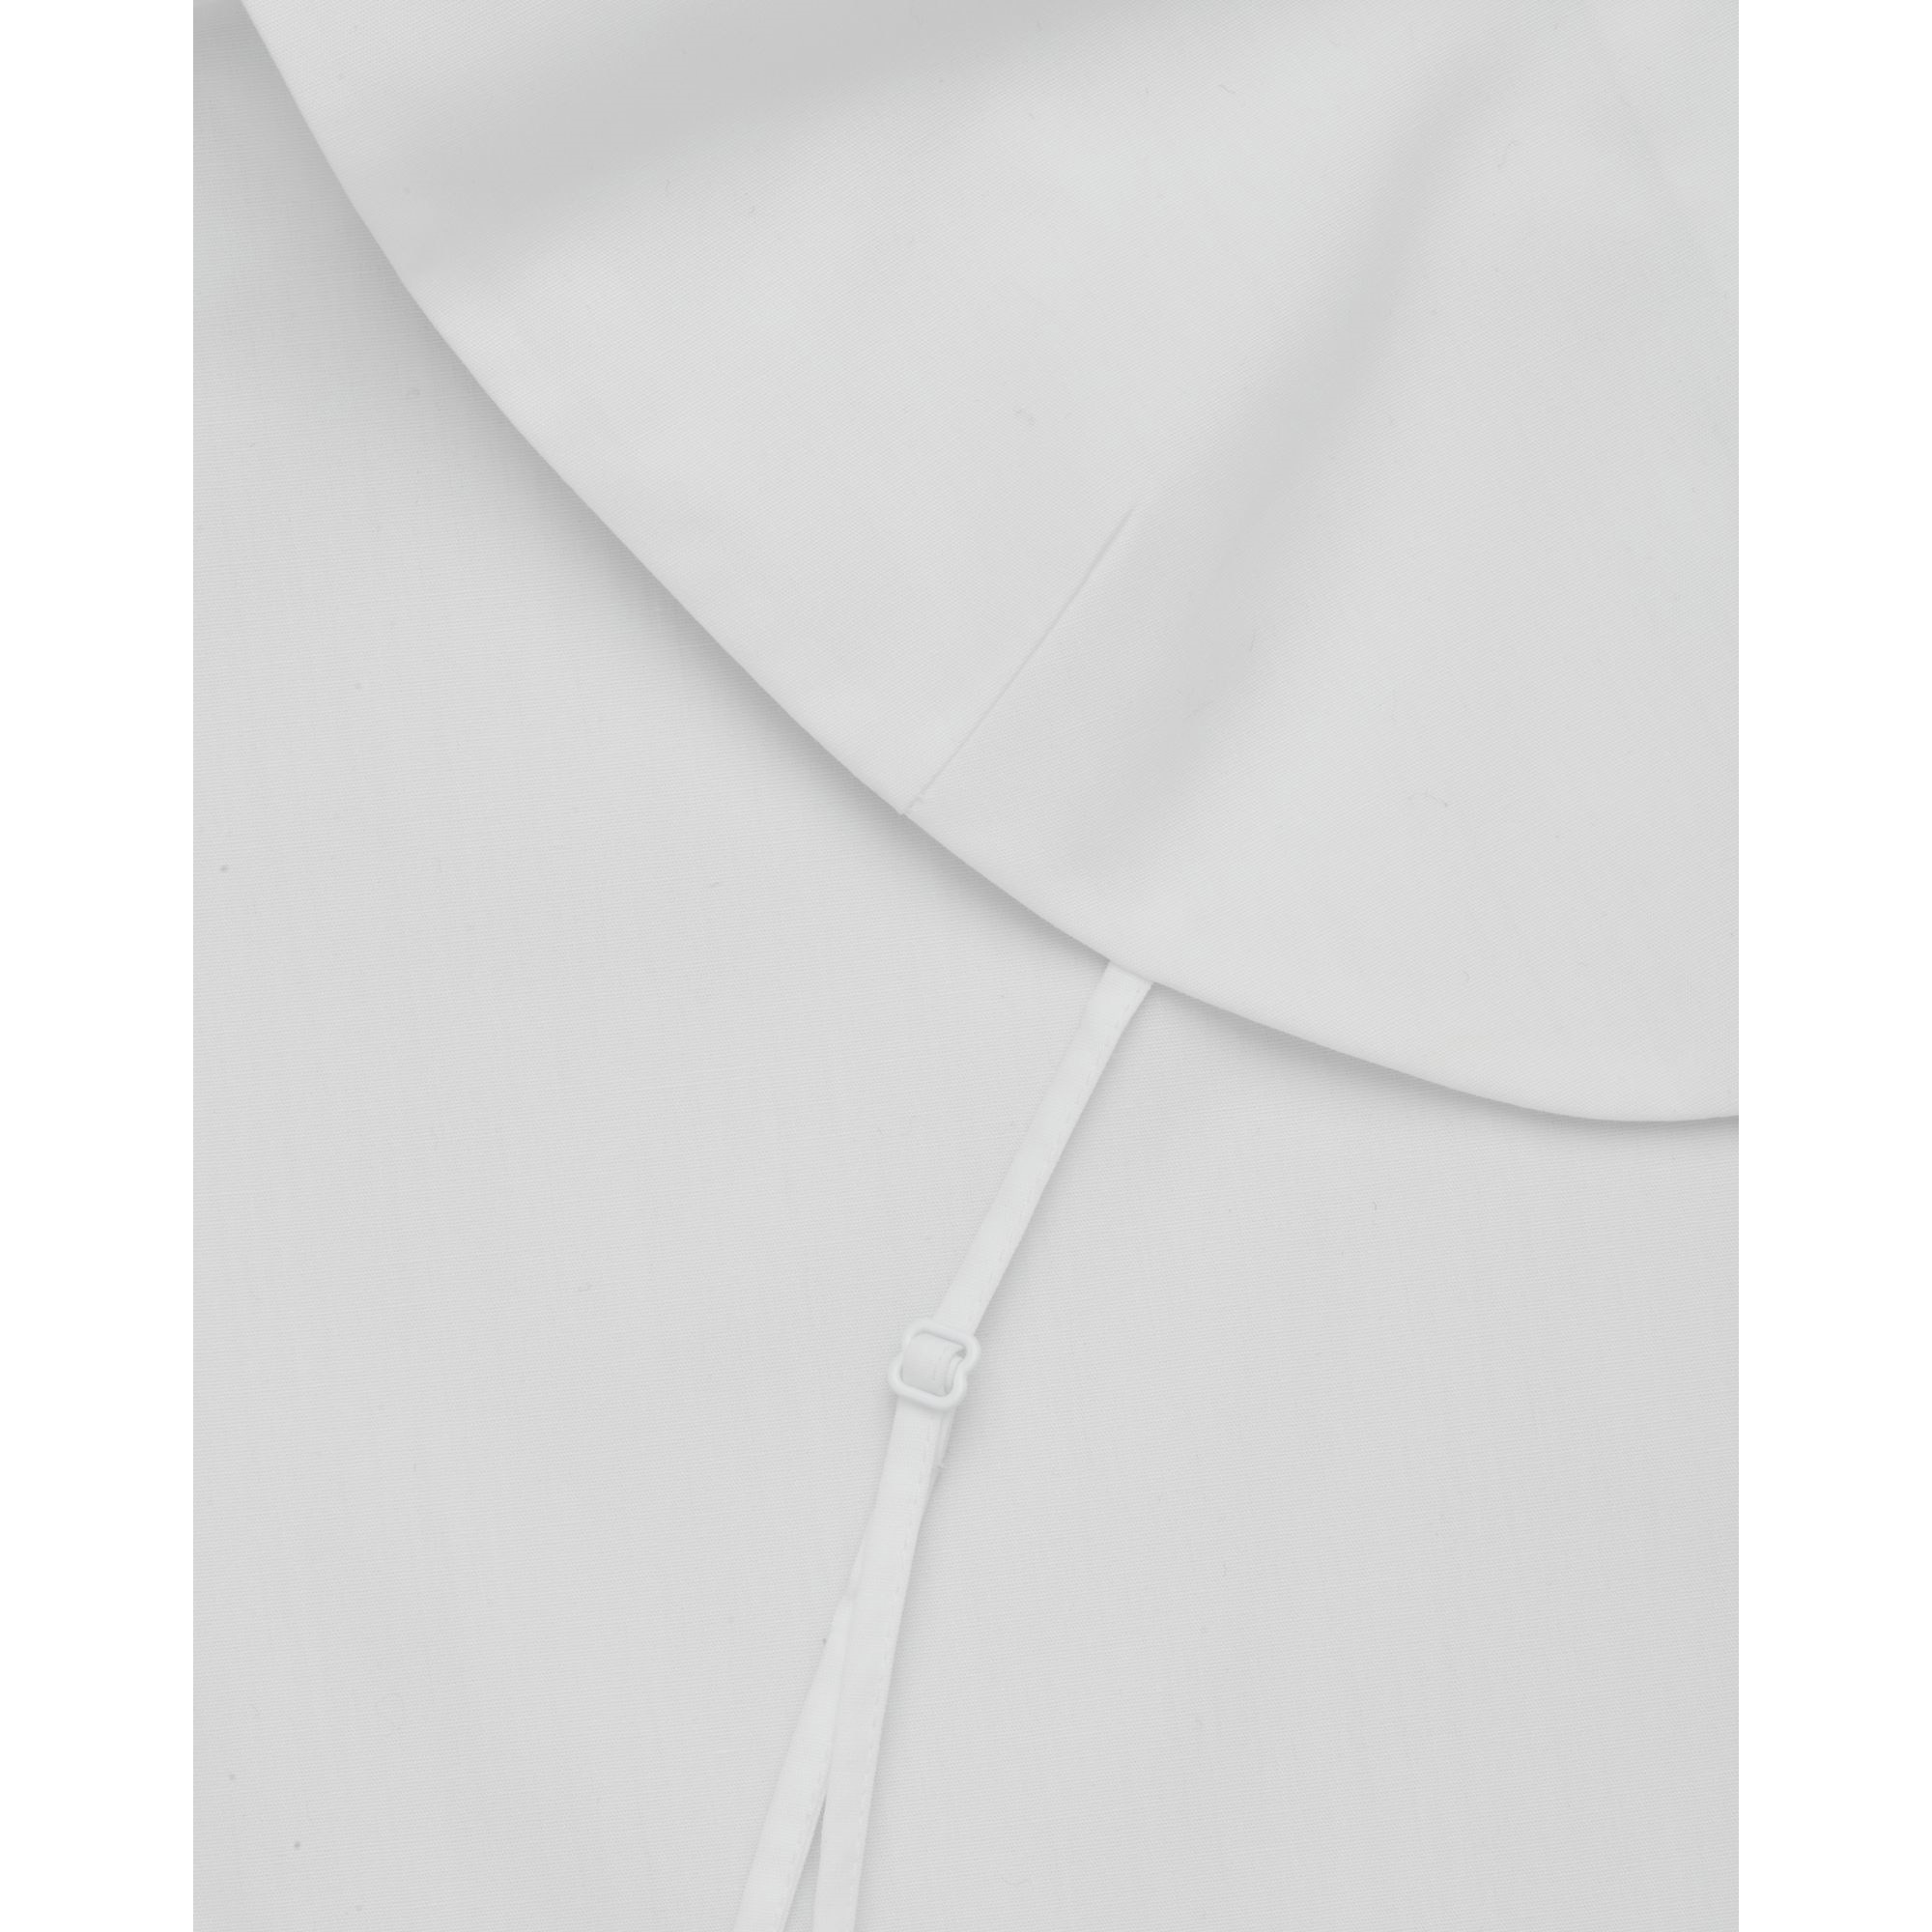 COS☆PLEATED MOCK SHIRT / white